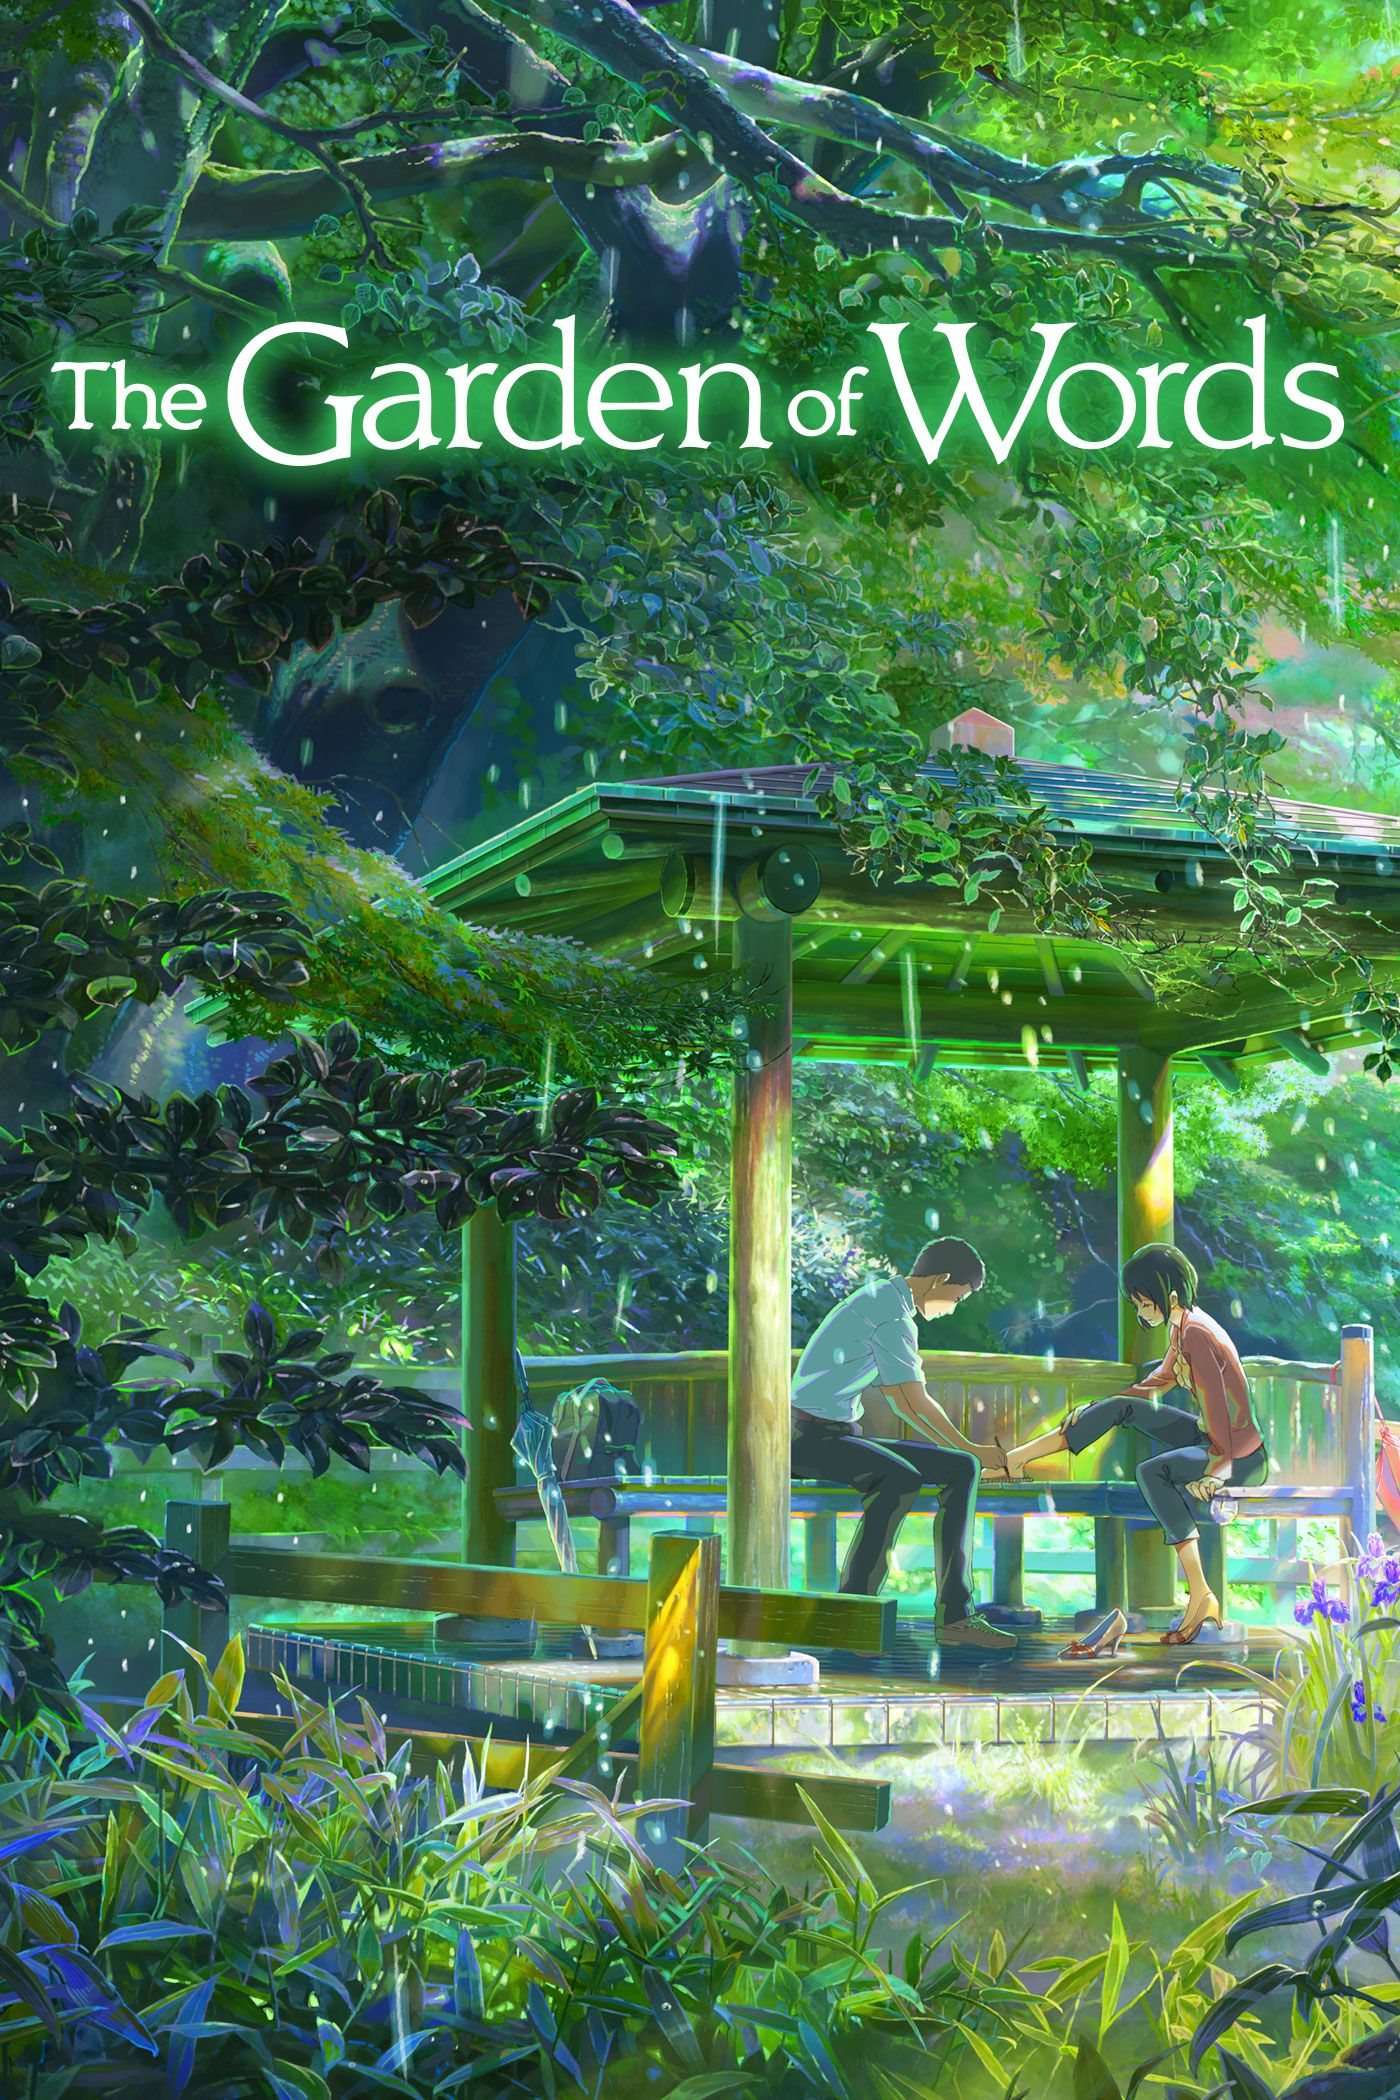 Garden of Words animation anime romance Garden of